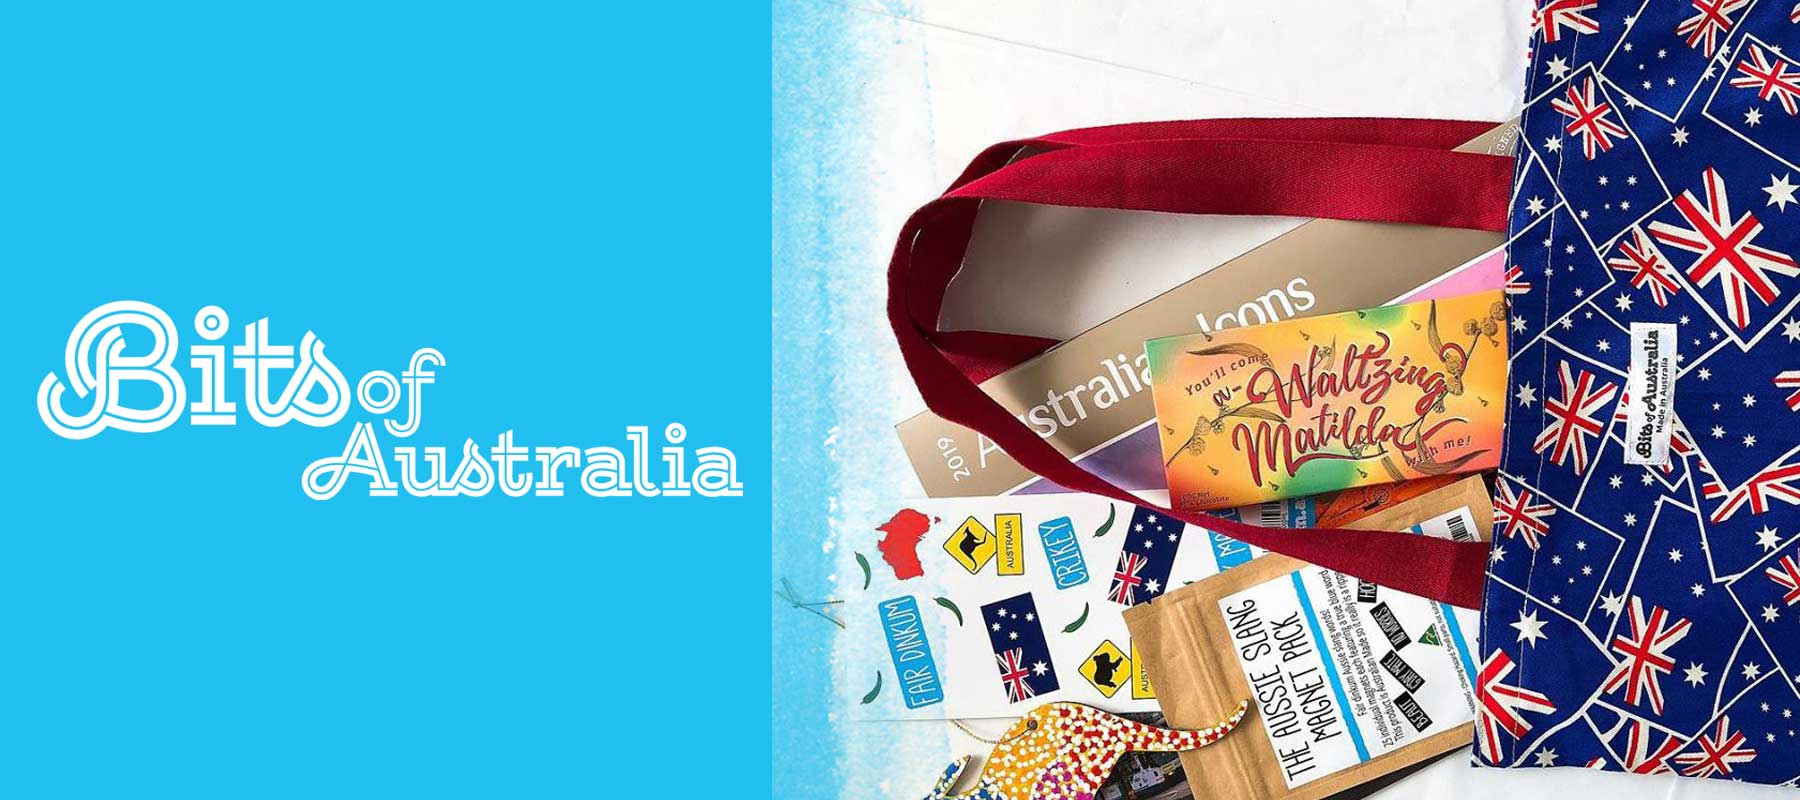 Australiana Gifts Sydney Buy Aussie Souvenirs Now